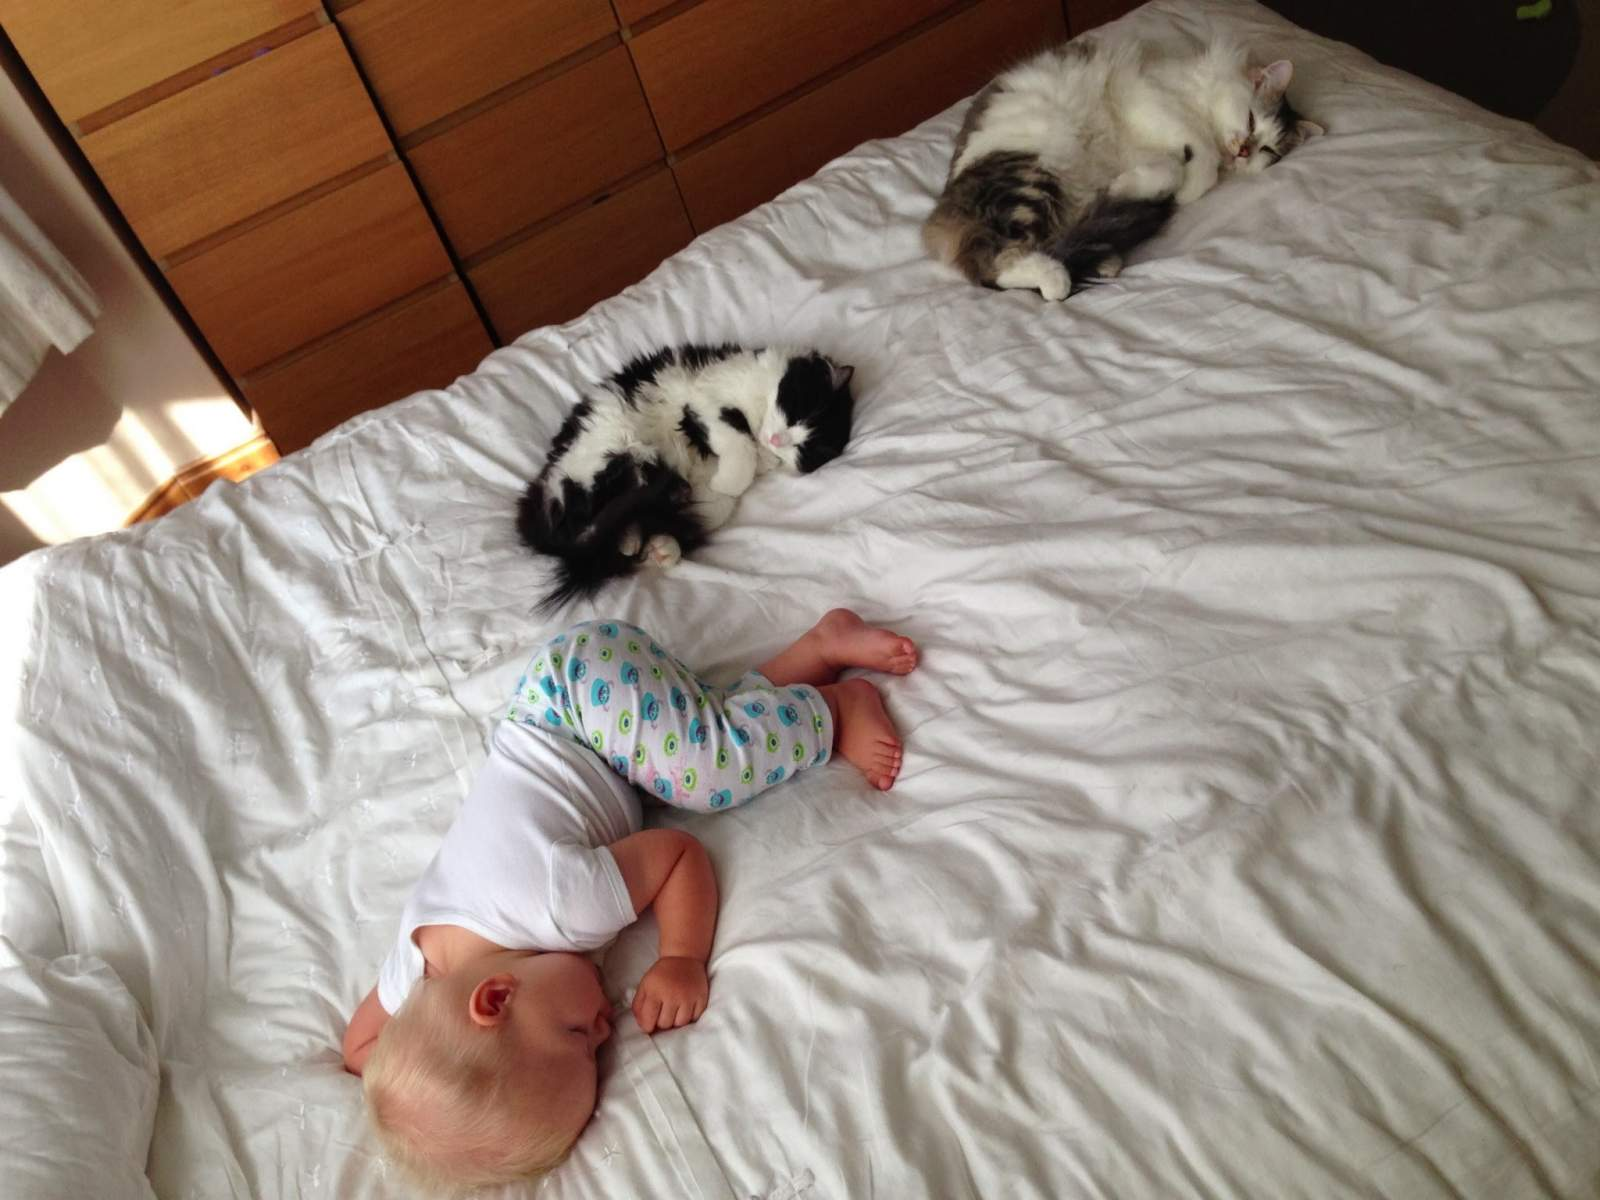 two cats and a toddler on a bed